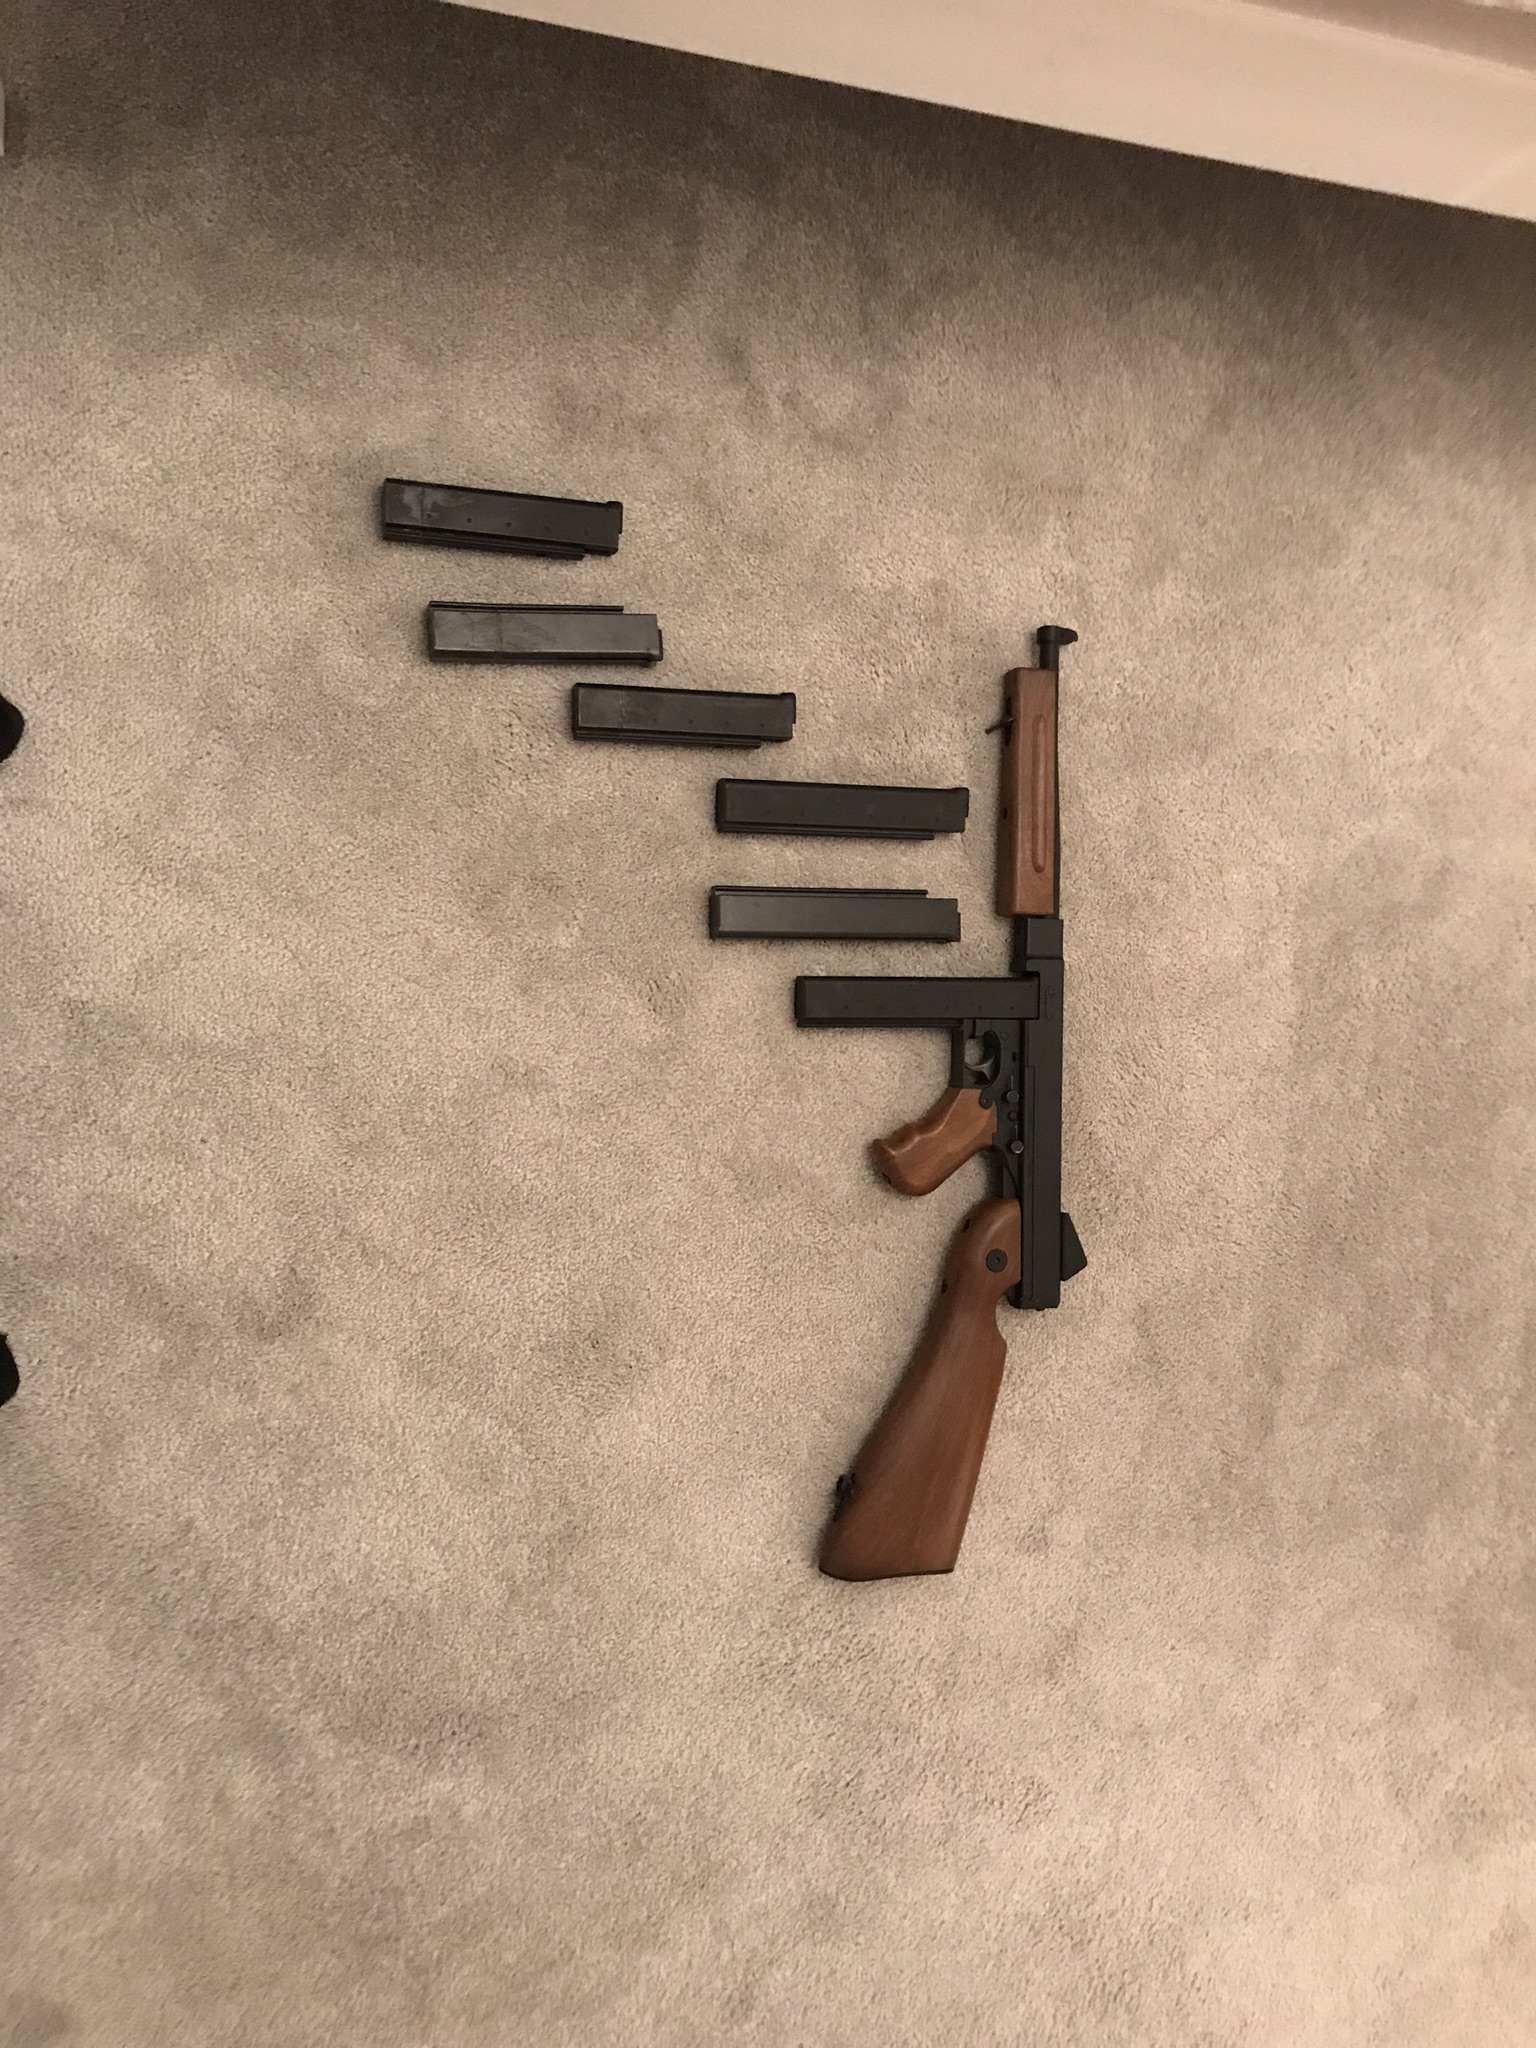 King arms Thompson m1a1 (DELETED) - Buy & Sell Used Airsoft Equipment -  AirsoftHub